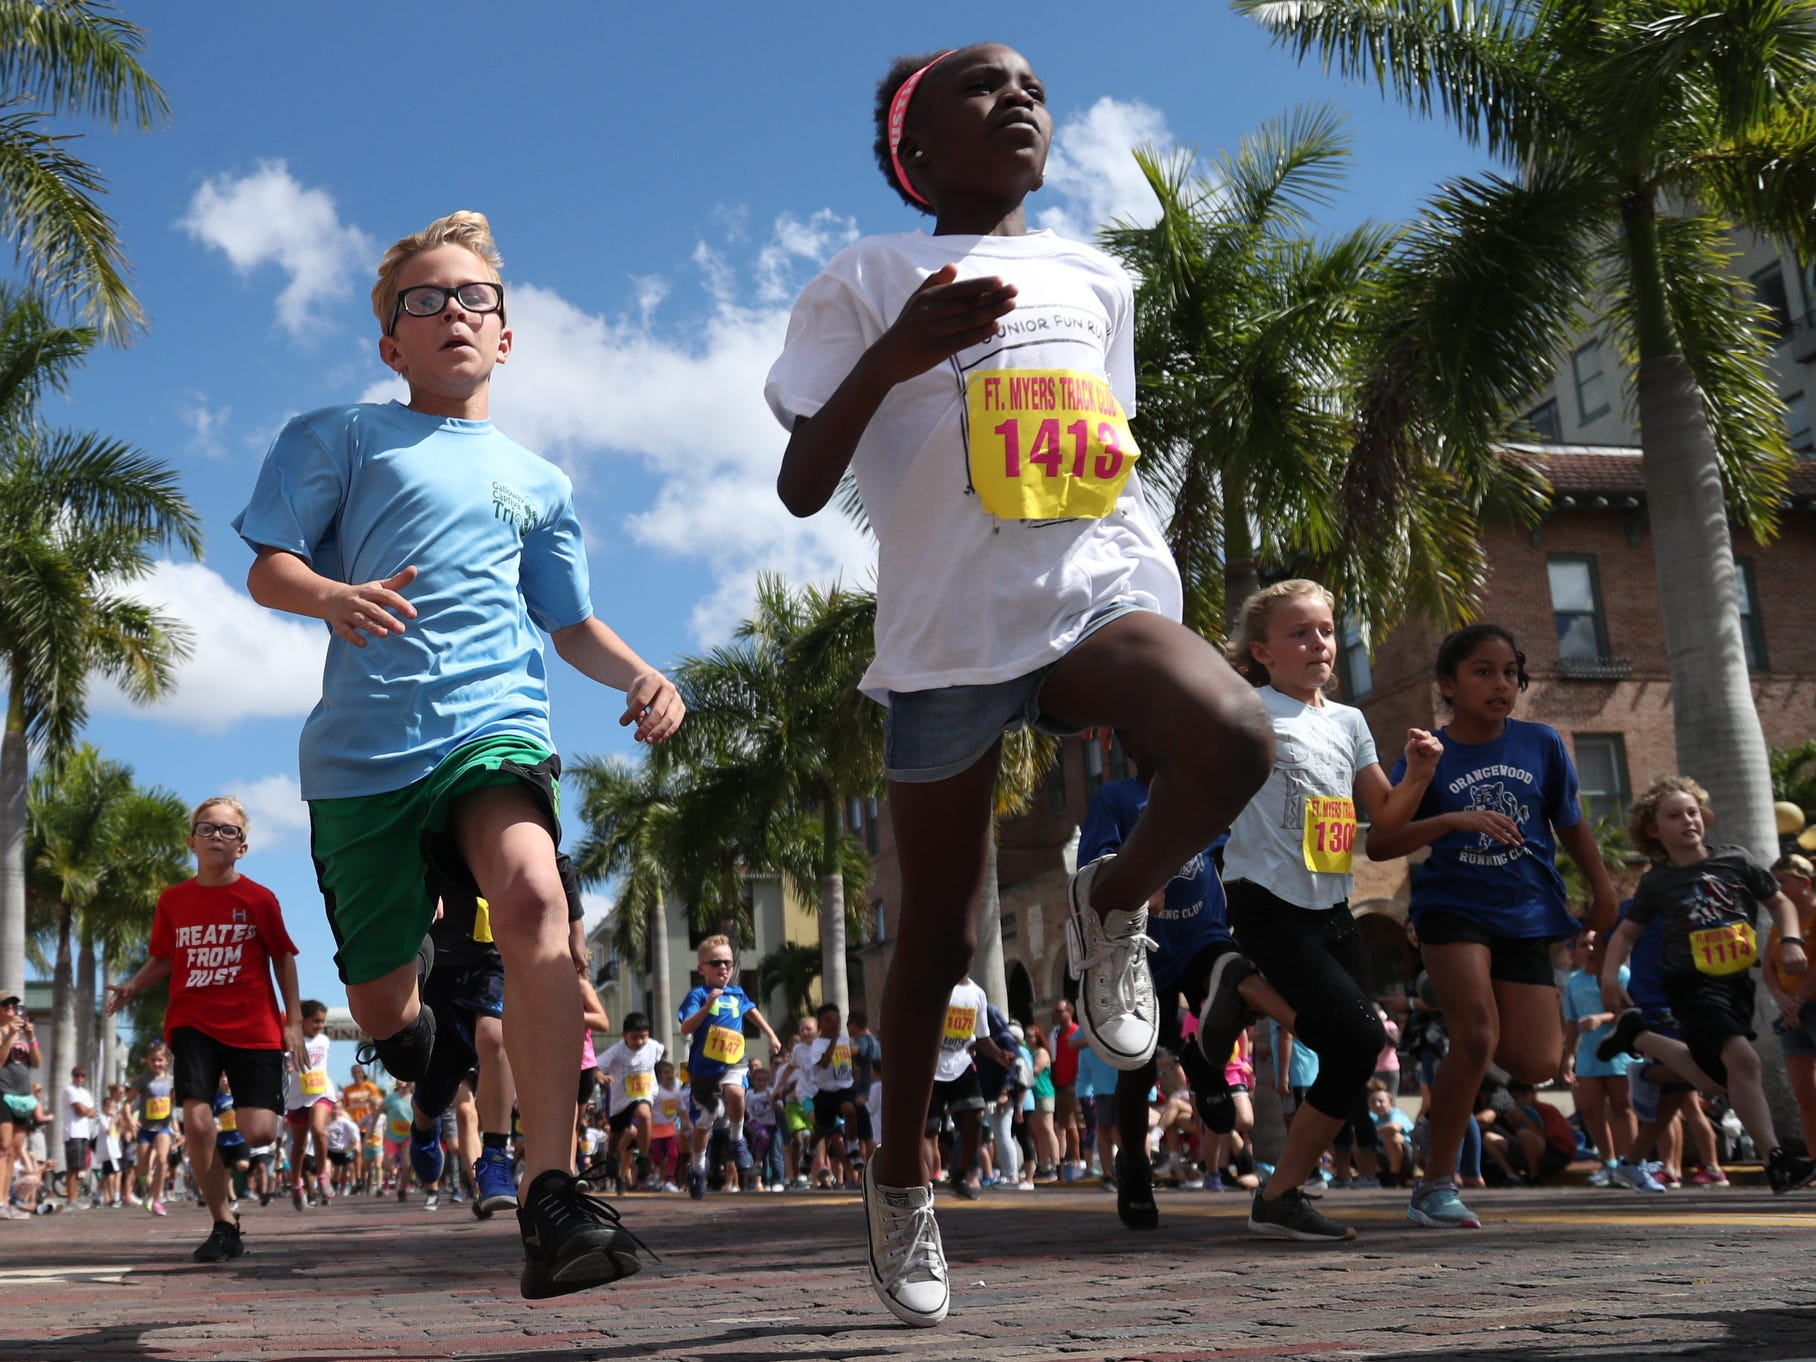 More than 300 kids raced in the Edison Festival of Light Junior Fun Run races on Sunday in downtown Fort Myers.